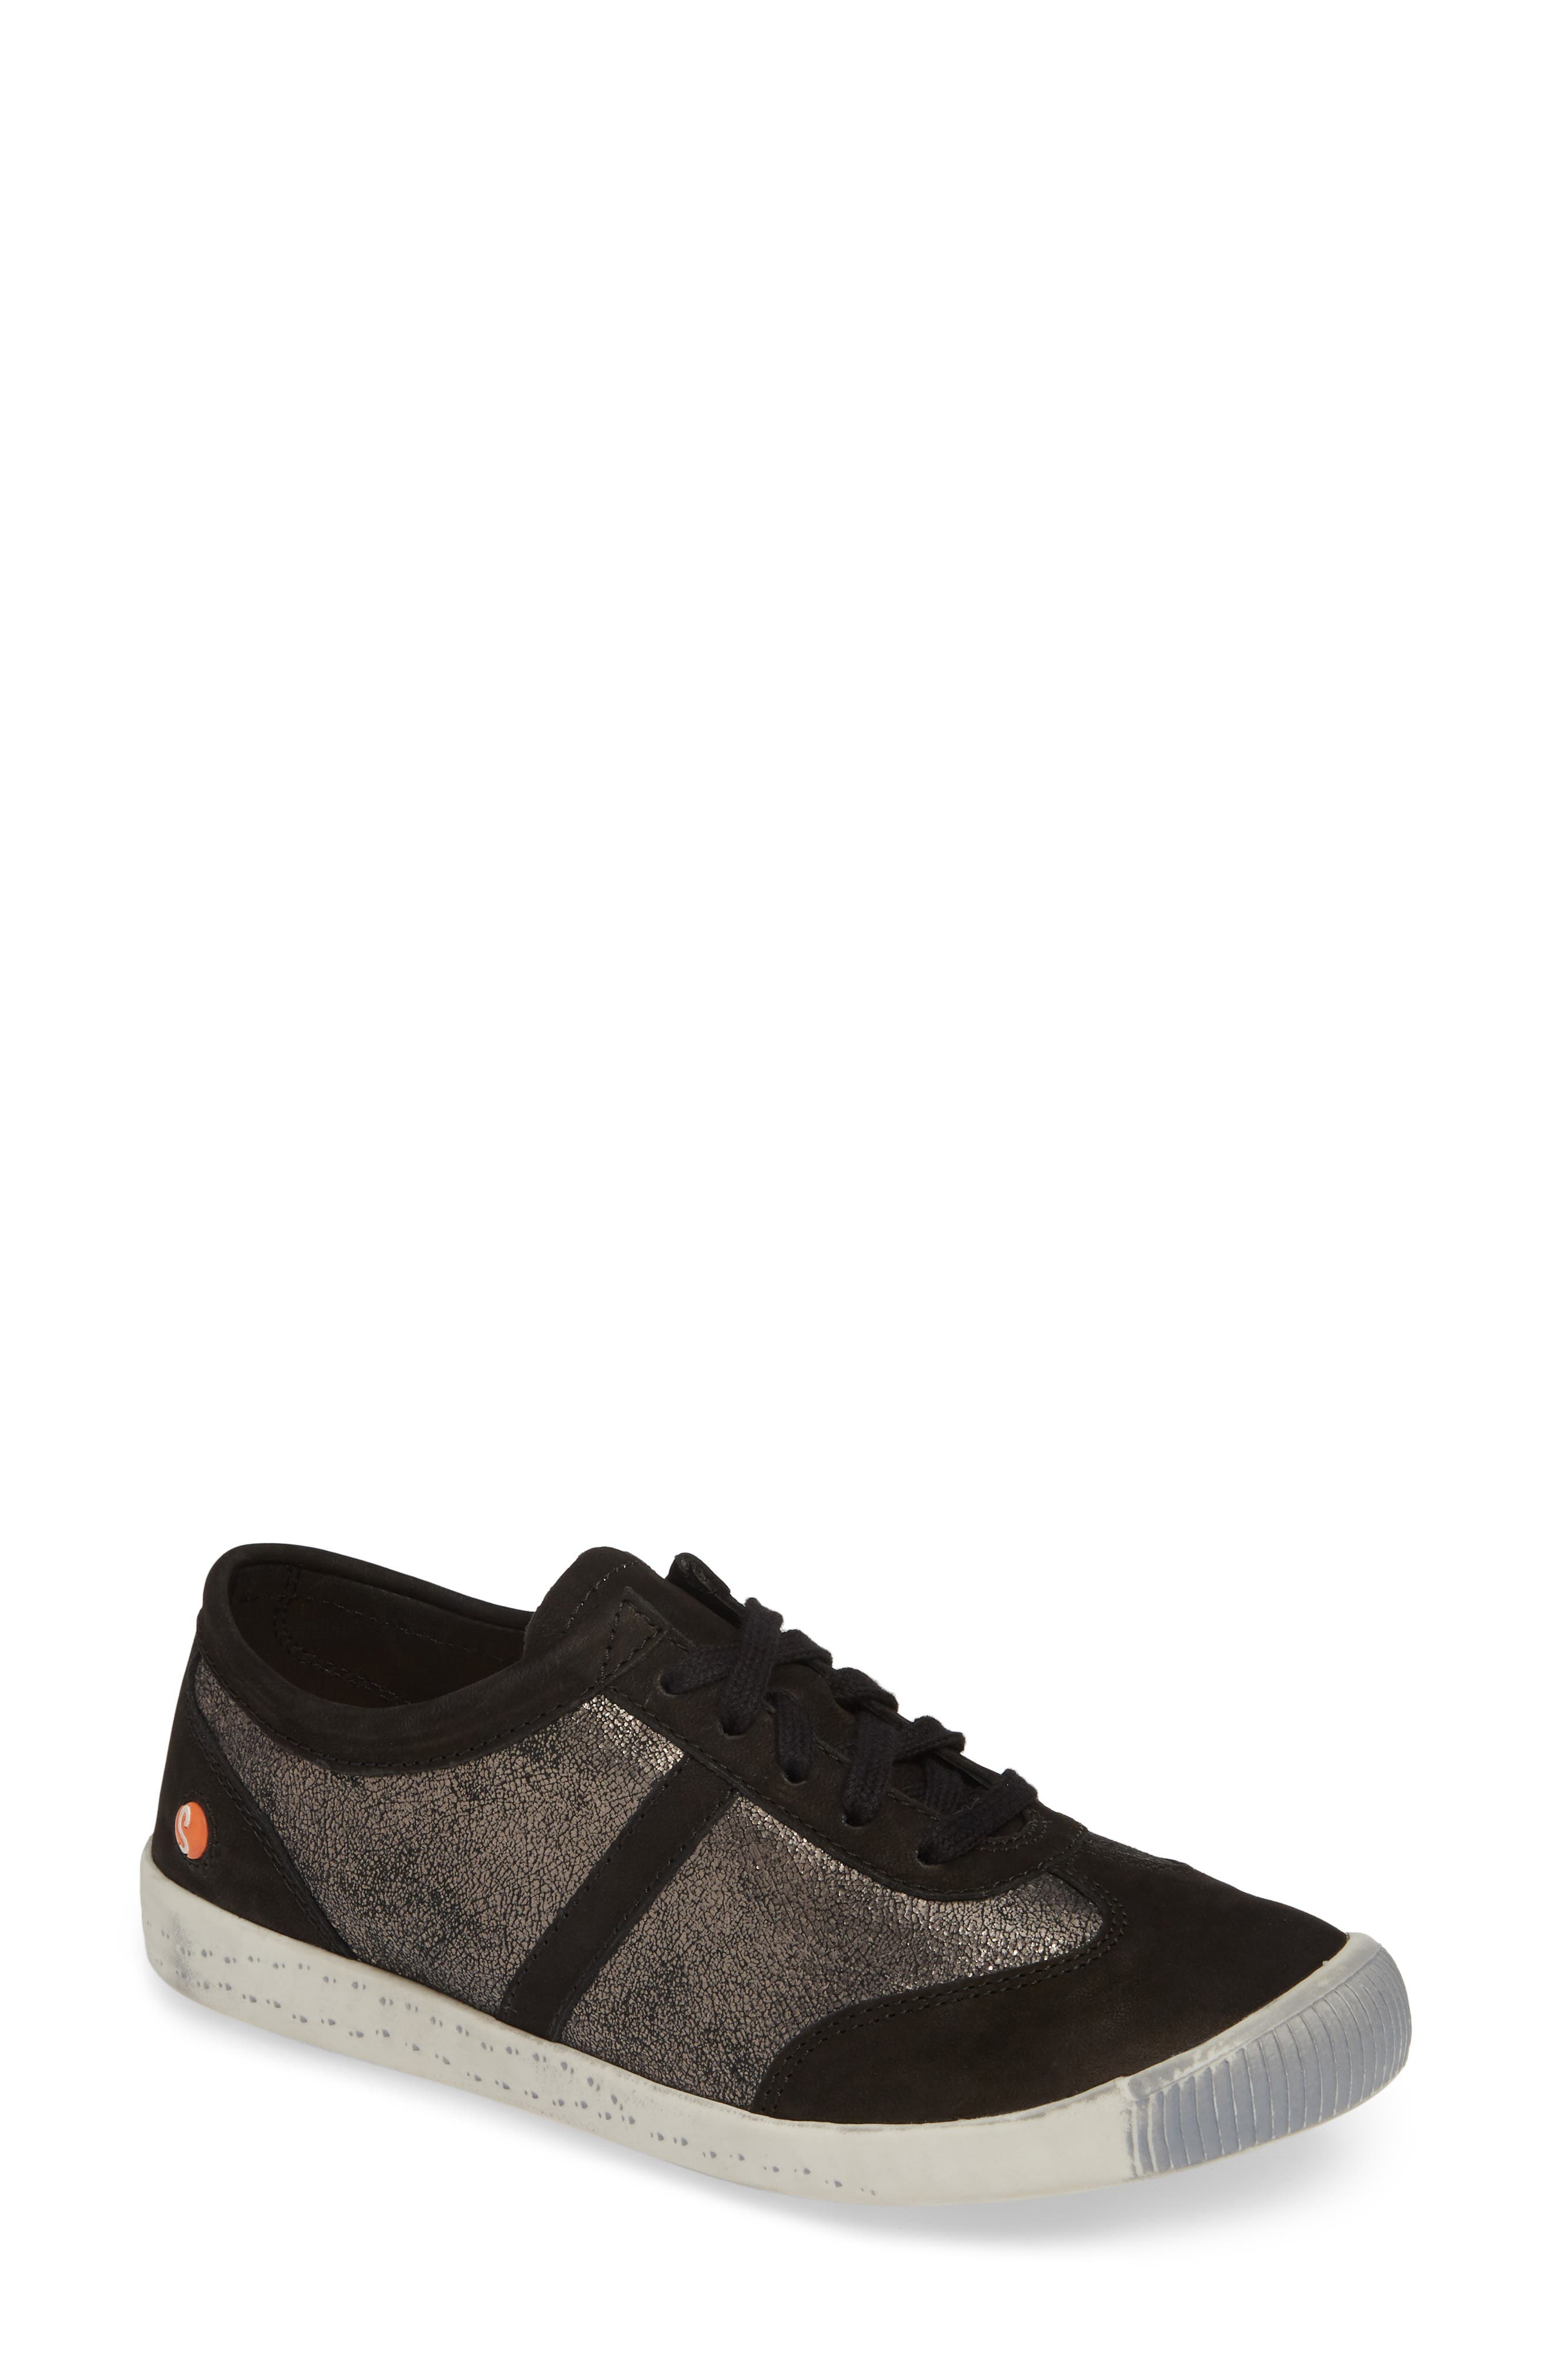 Softinos By Fly London Ifi Sneaker, Grey